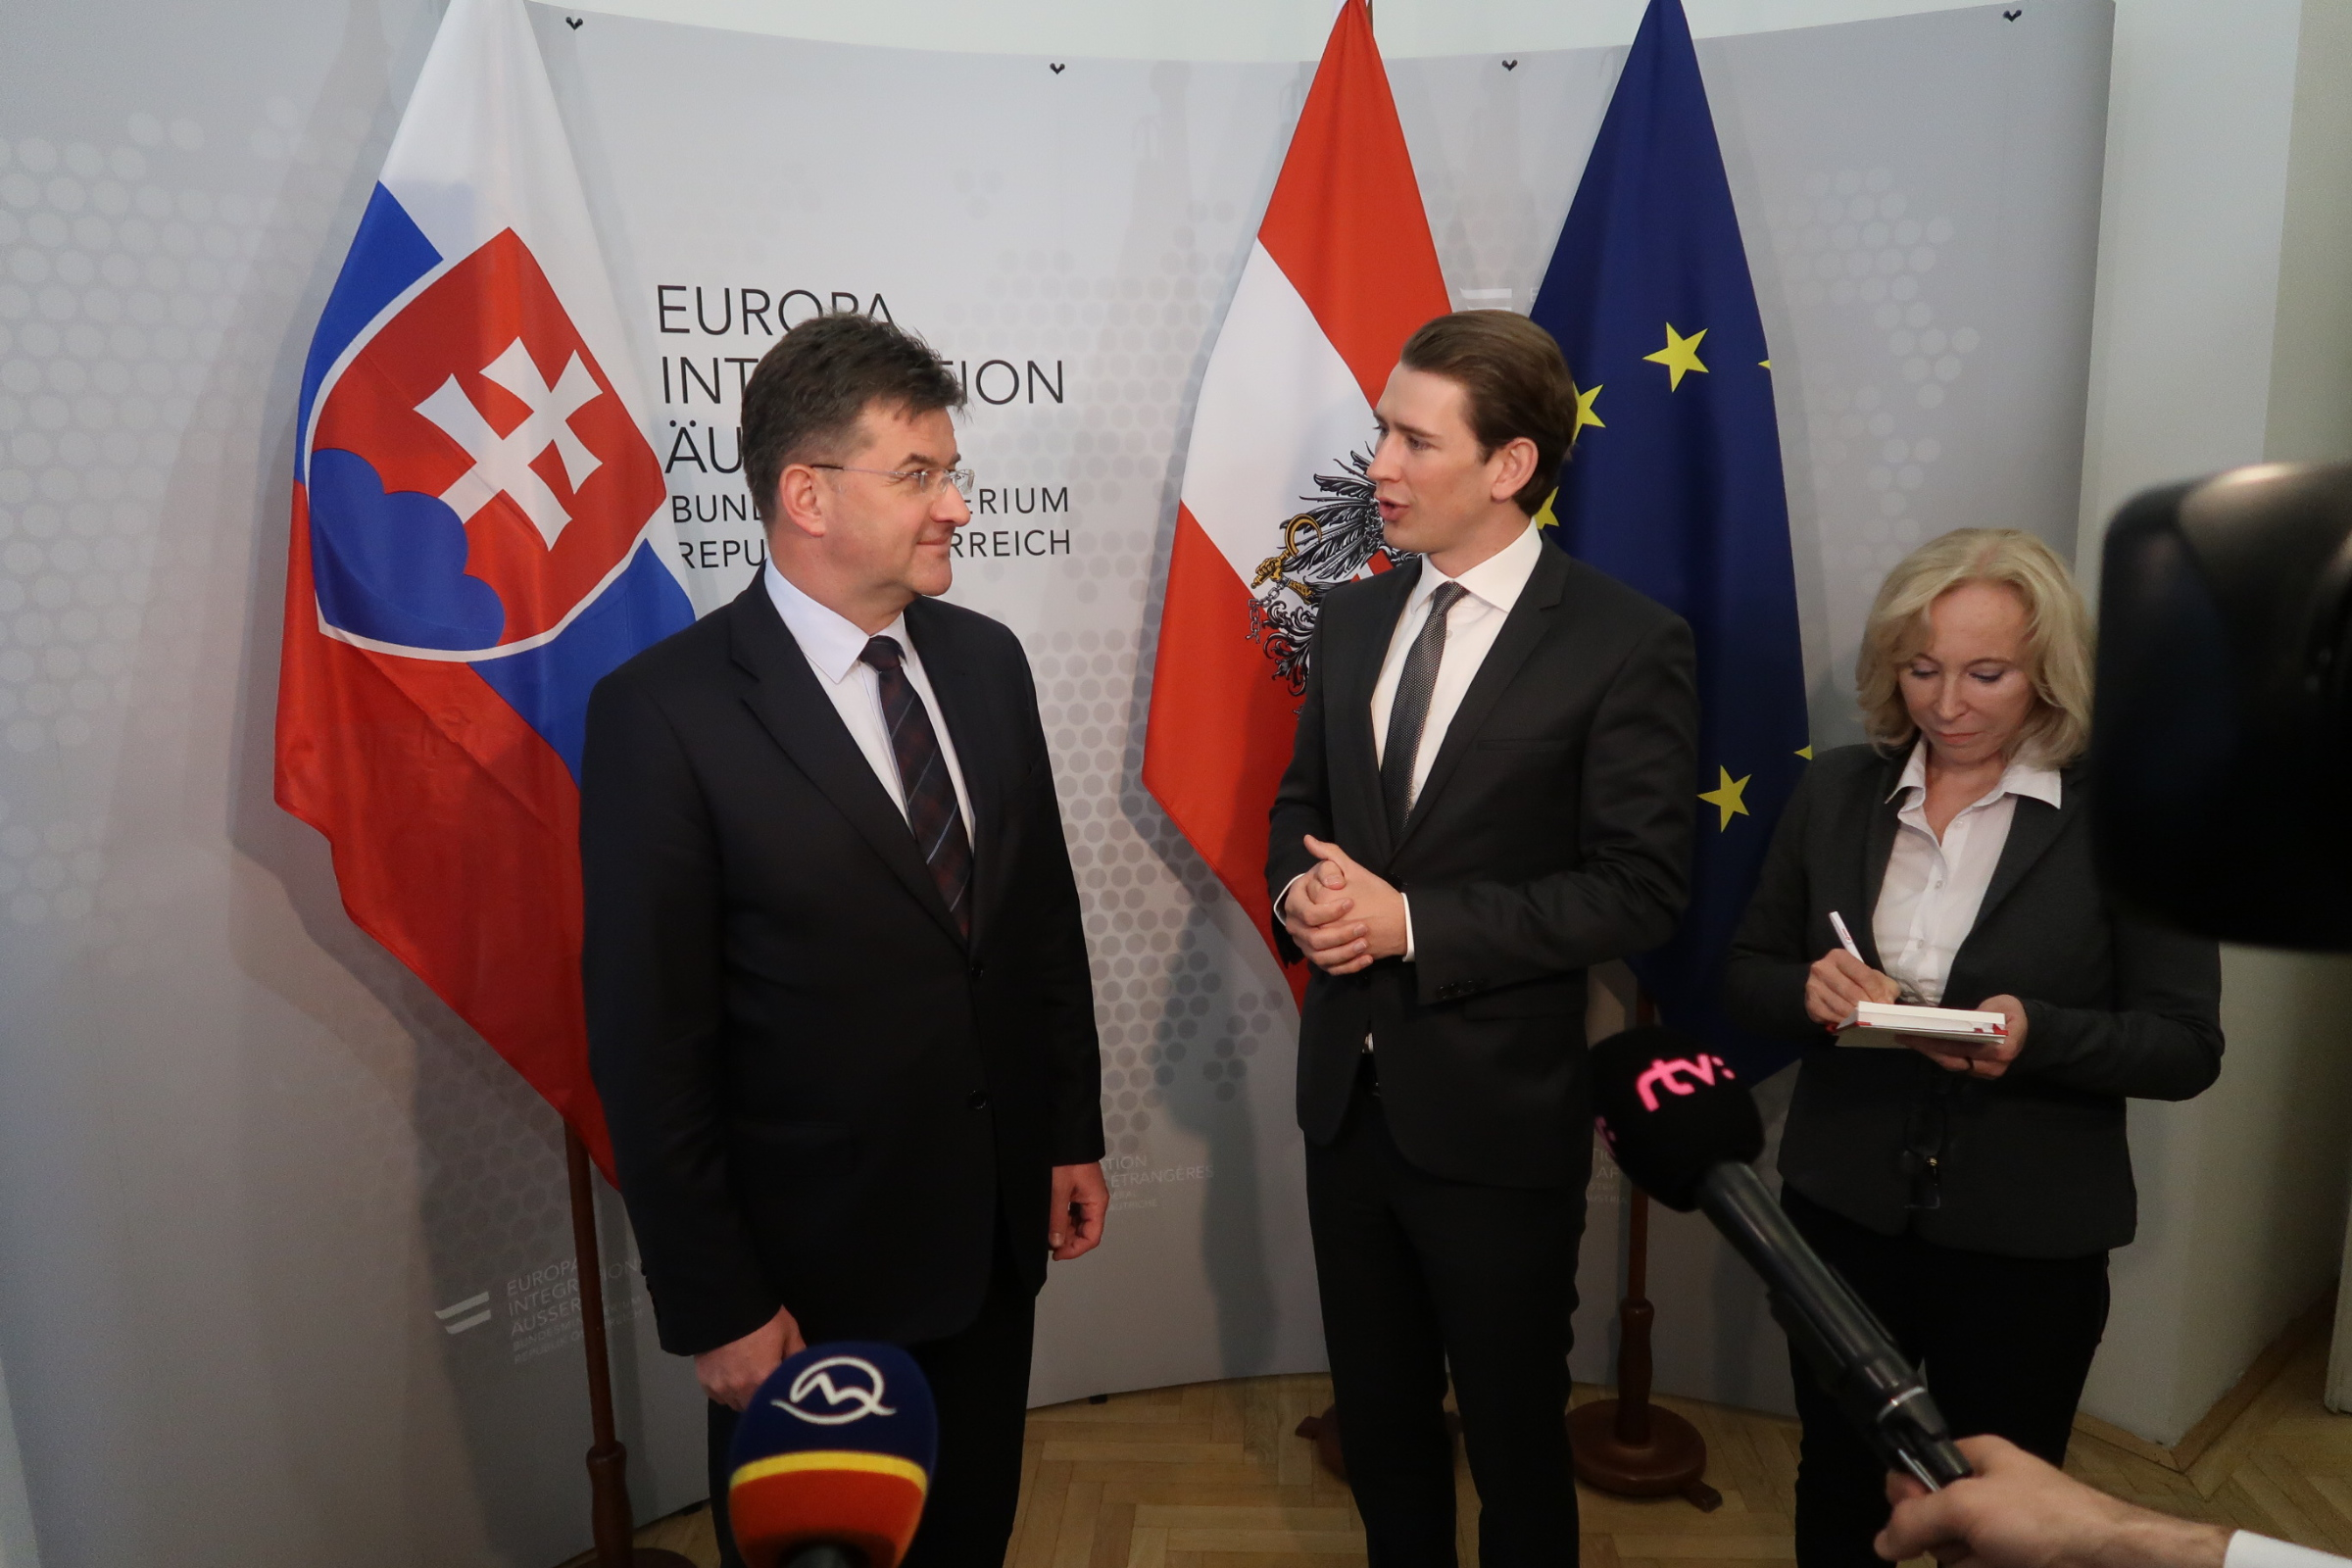 Minister Lajčák and Austrian Minister Kurz discuss Brexit, OSCE presidency and bilateral issues in Vienna